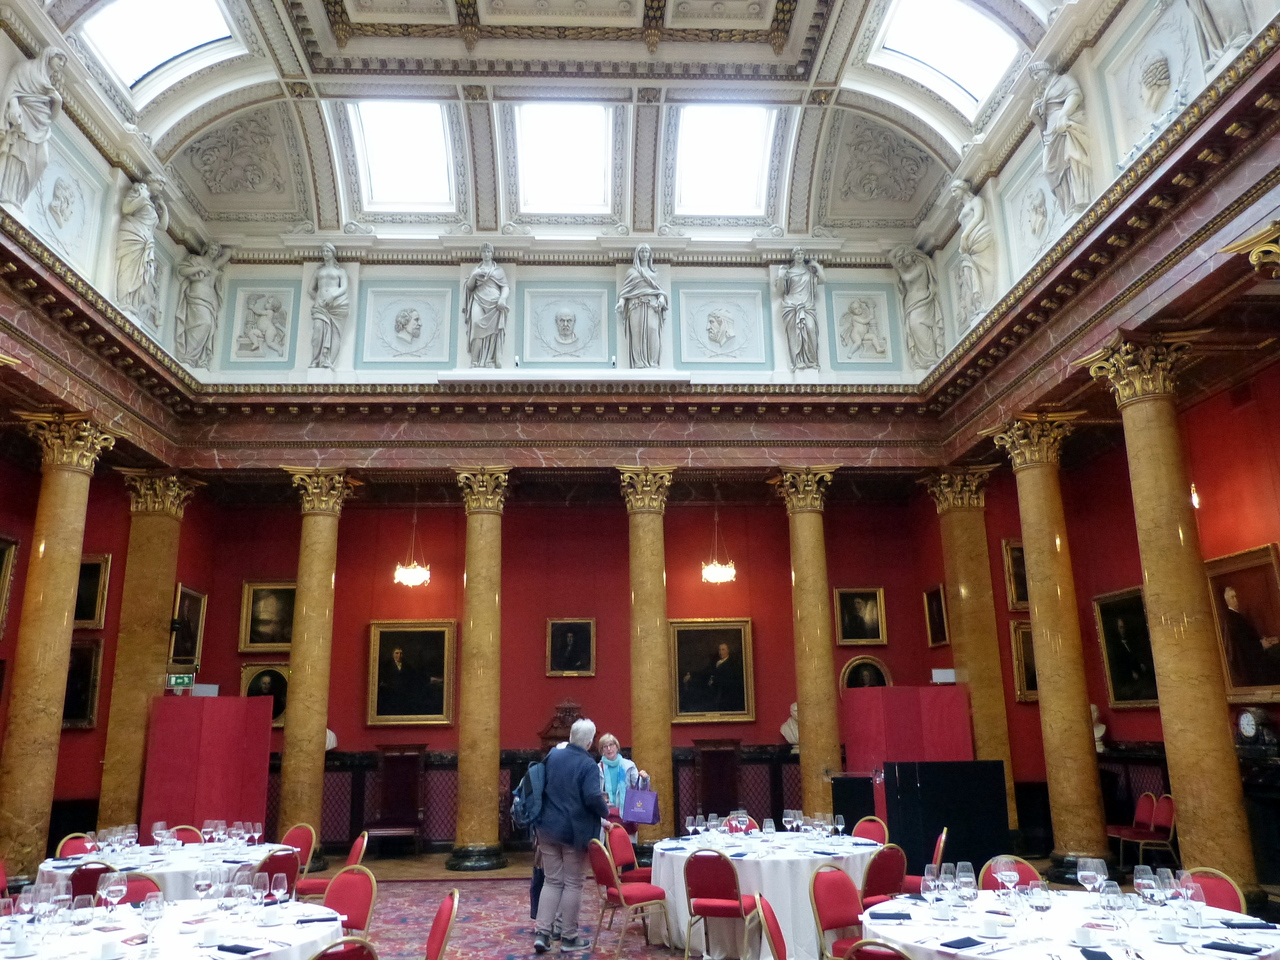 We had lunch in the Grand Hall of The Royal College of Physicians of Edinburgh.